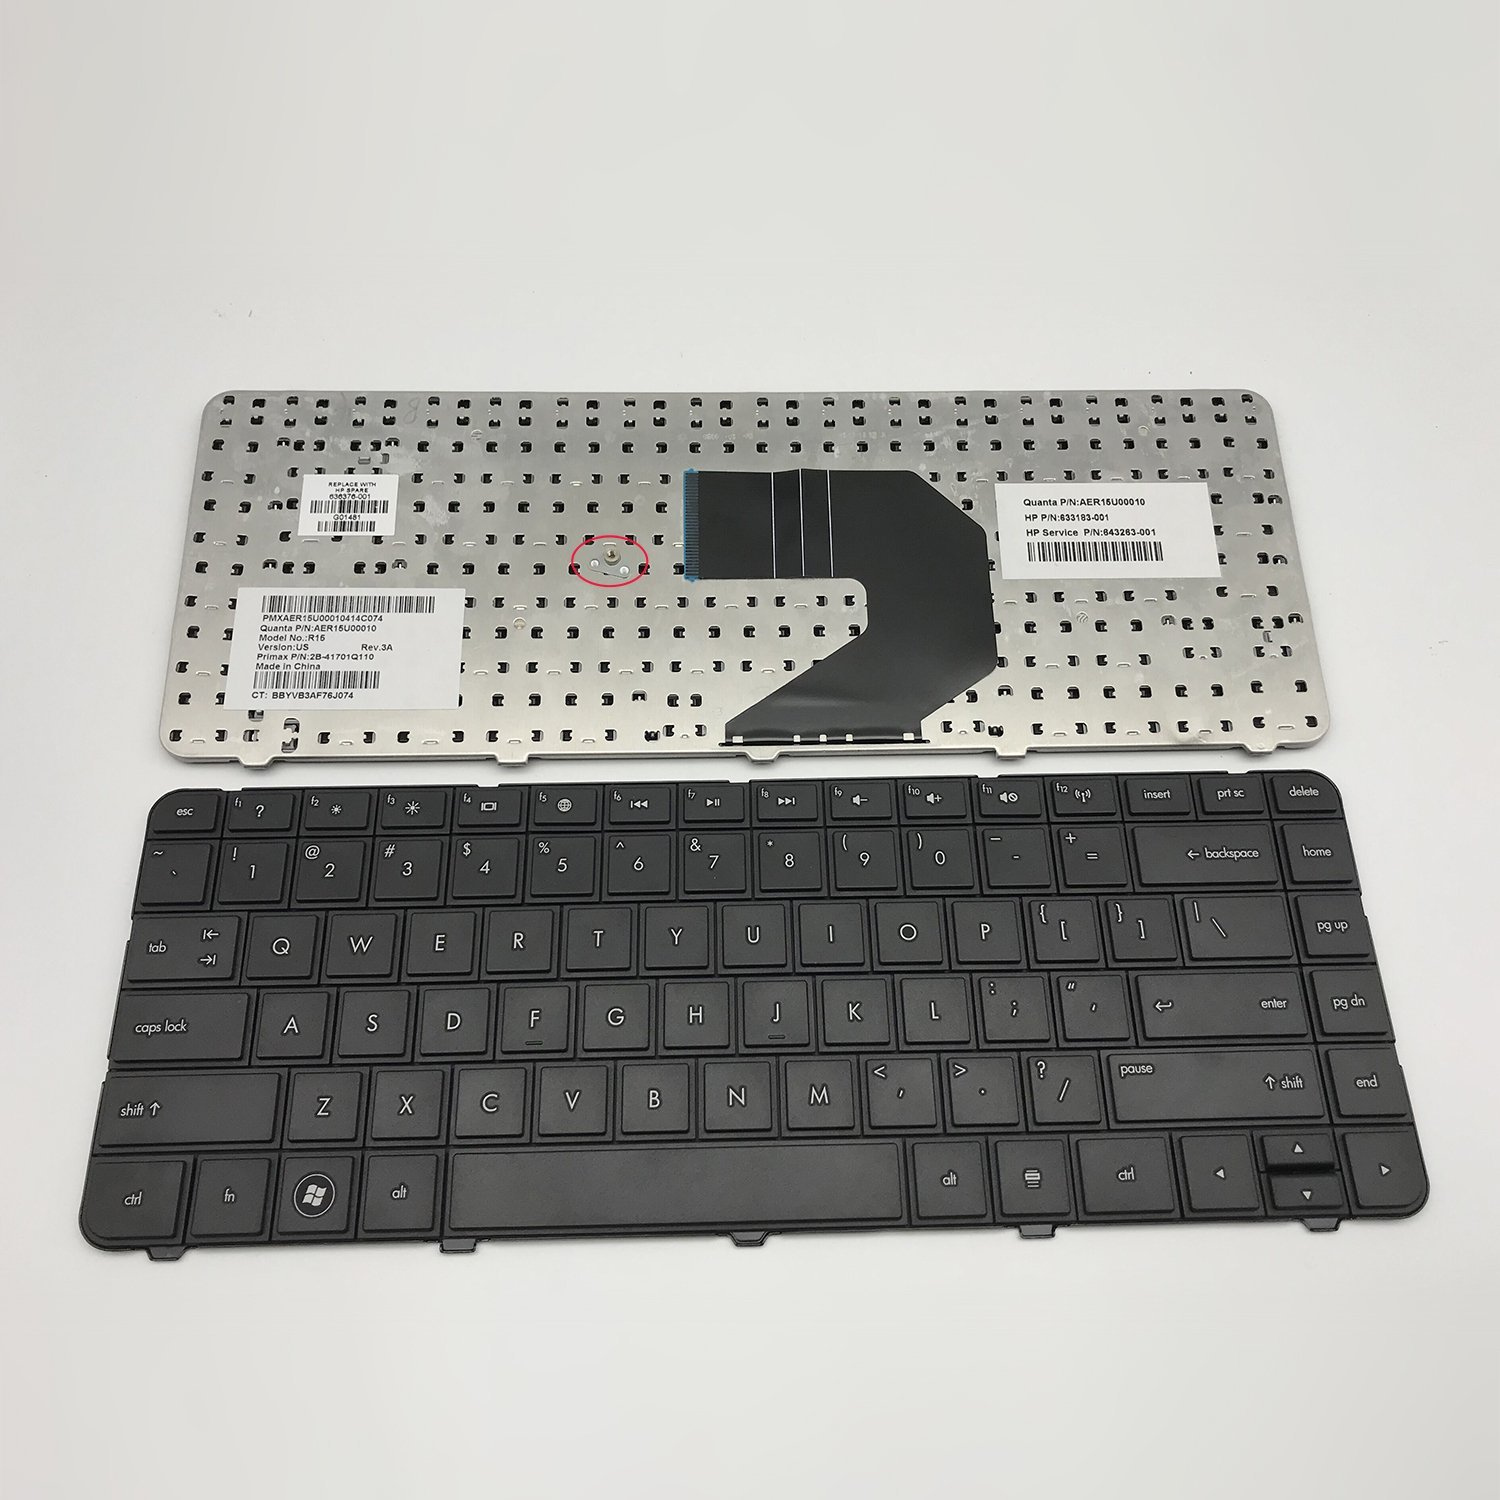 Sierra Blackmon New and original Laptop Replacement Keyboard For HP Pavilion G4-1000 Series for HP Compaq Presario CQ57 Series HP 2000 Series HP G6 G6S G6T G6X Series